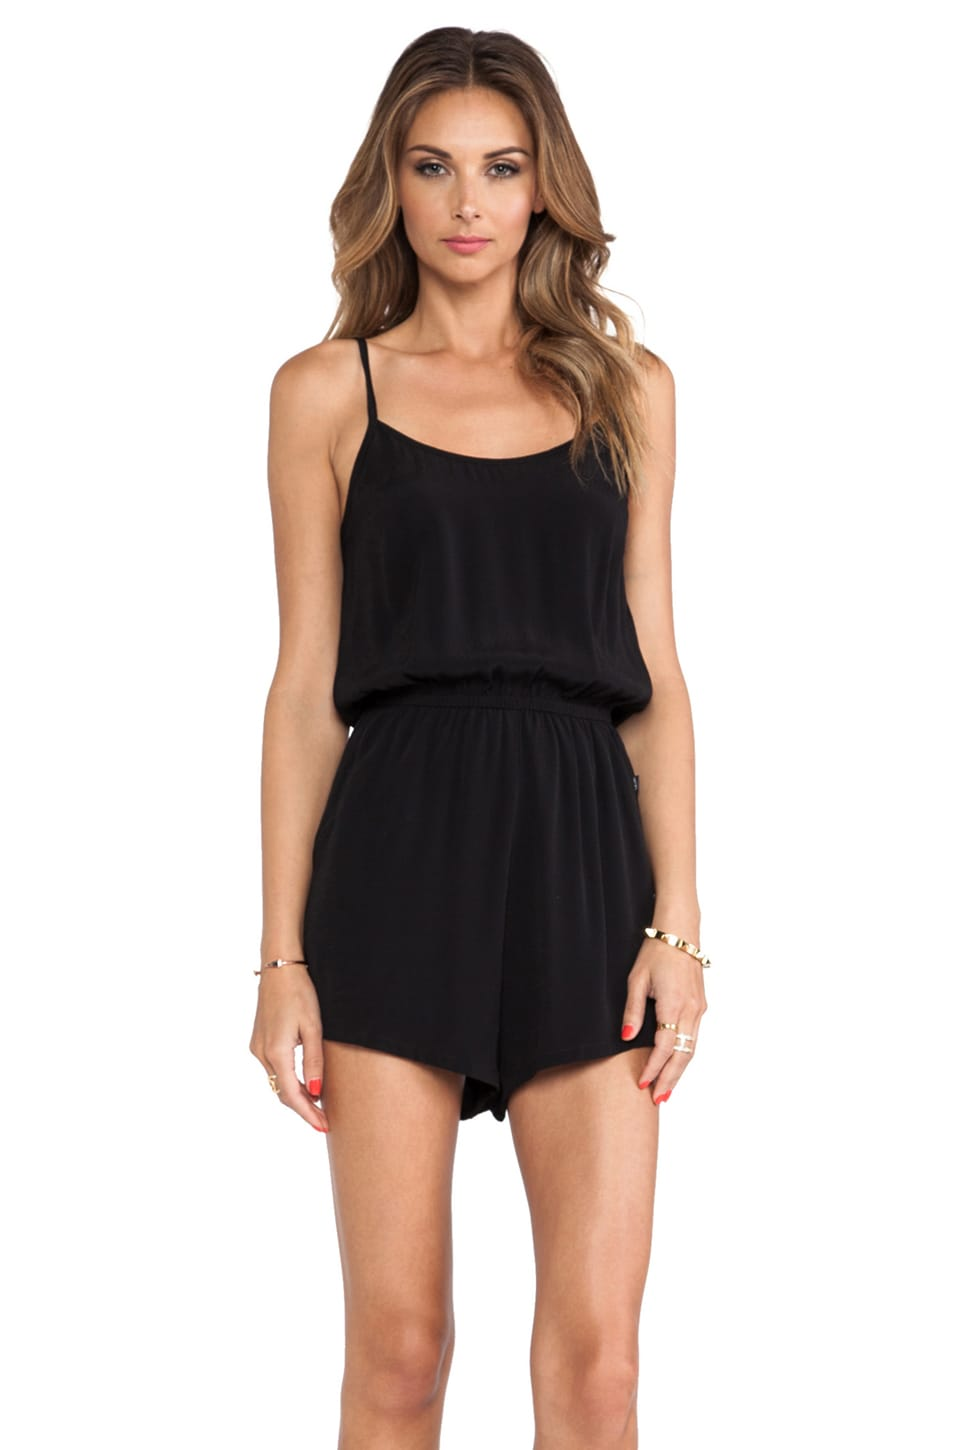 MINKPINK See The World Playsuit in Black